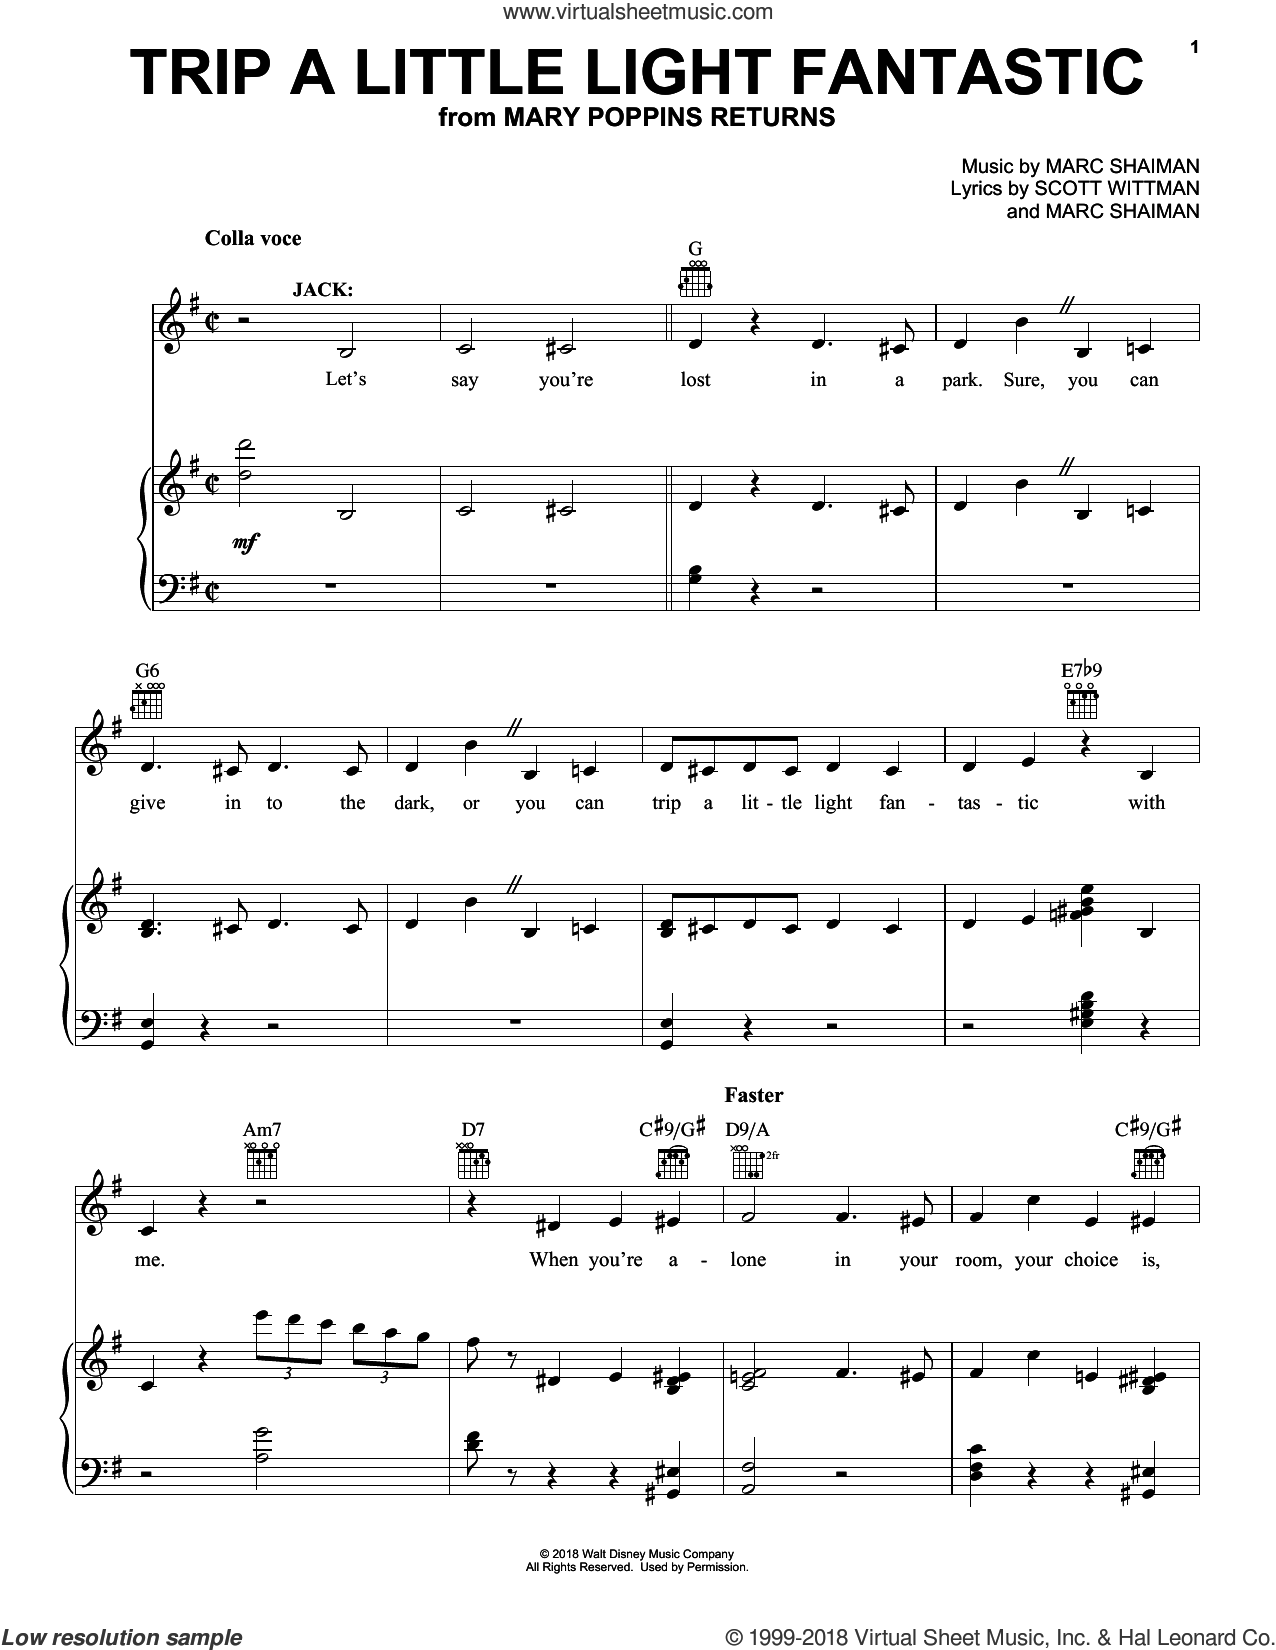 Trip A Little Light Fantastic (from Mary Poppins Returns) sheet music for voice, piano or guitar by Lin-Manuel Miranda, Marc Shaiman and Scott Wittman, intermediate skill level